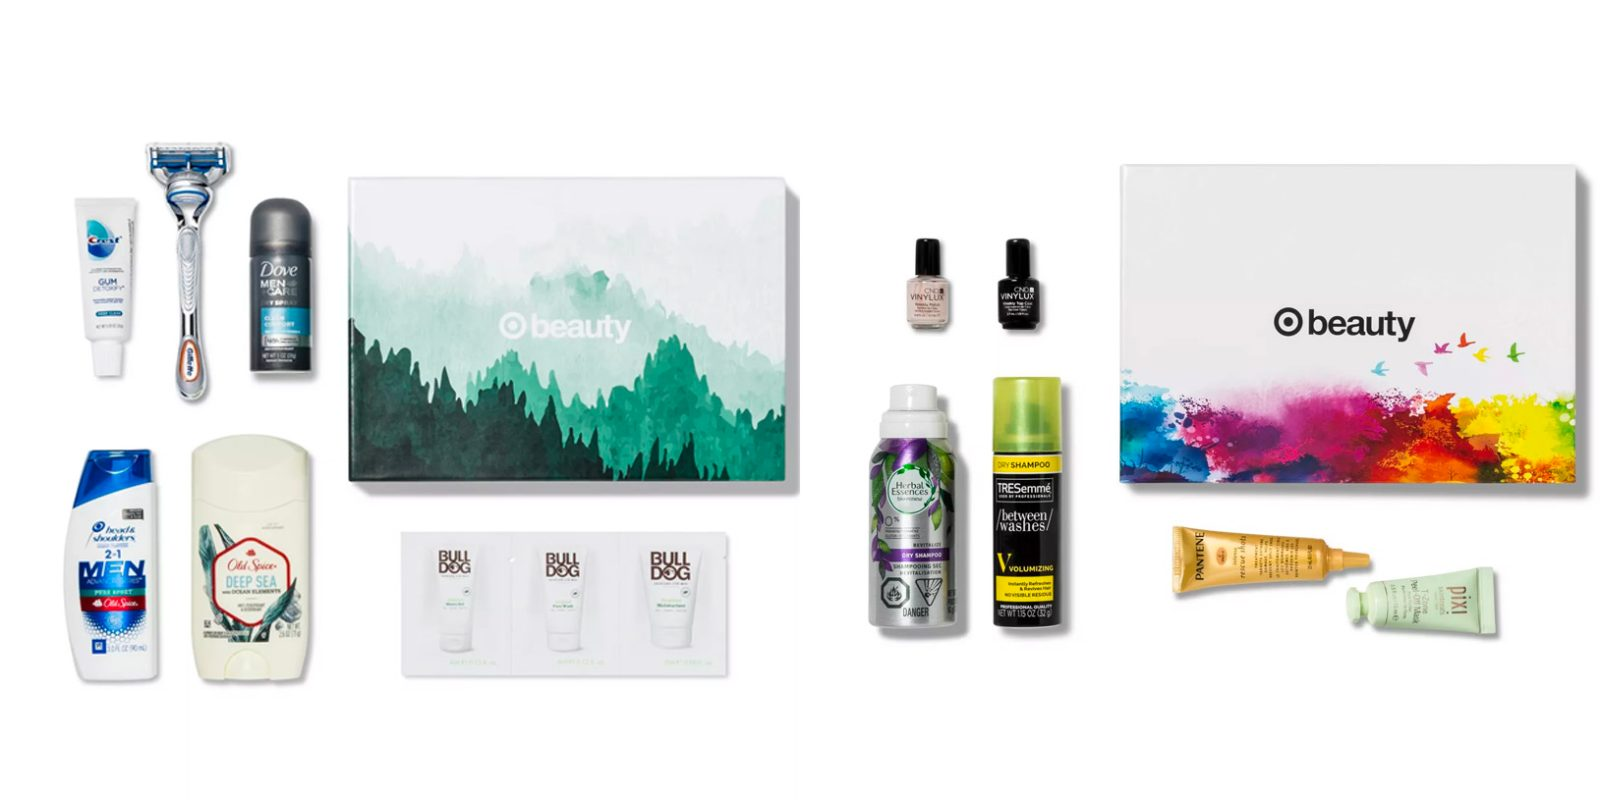 Target has June Beauty Boxes for men & women at $7 shipped